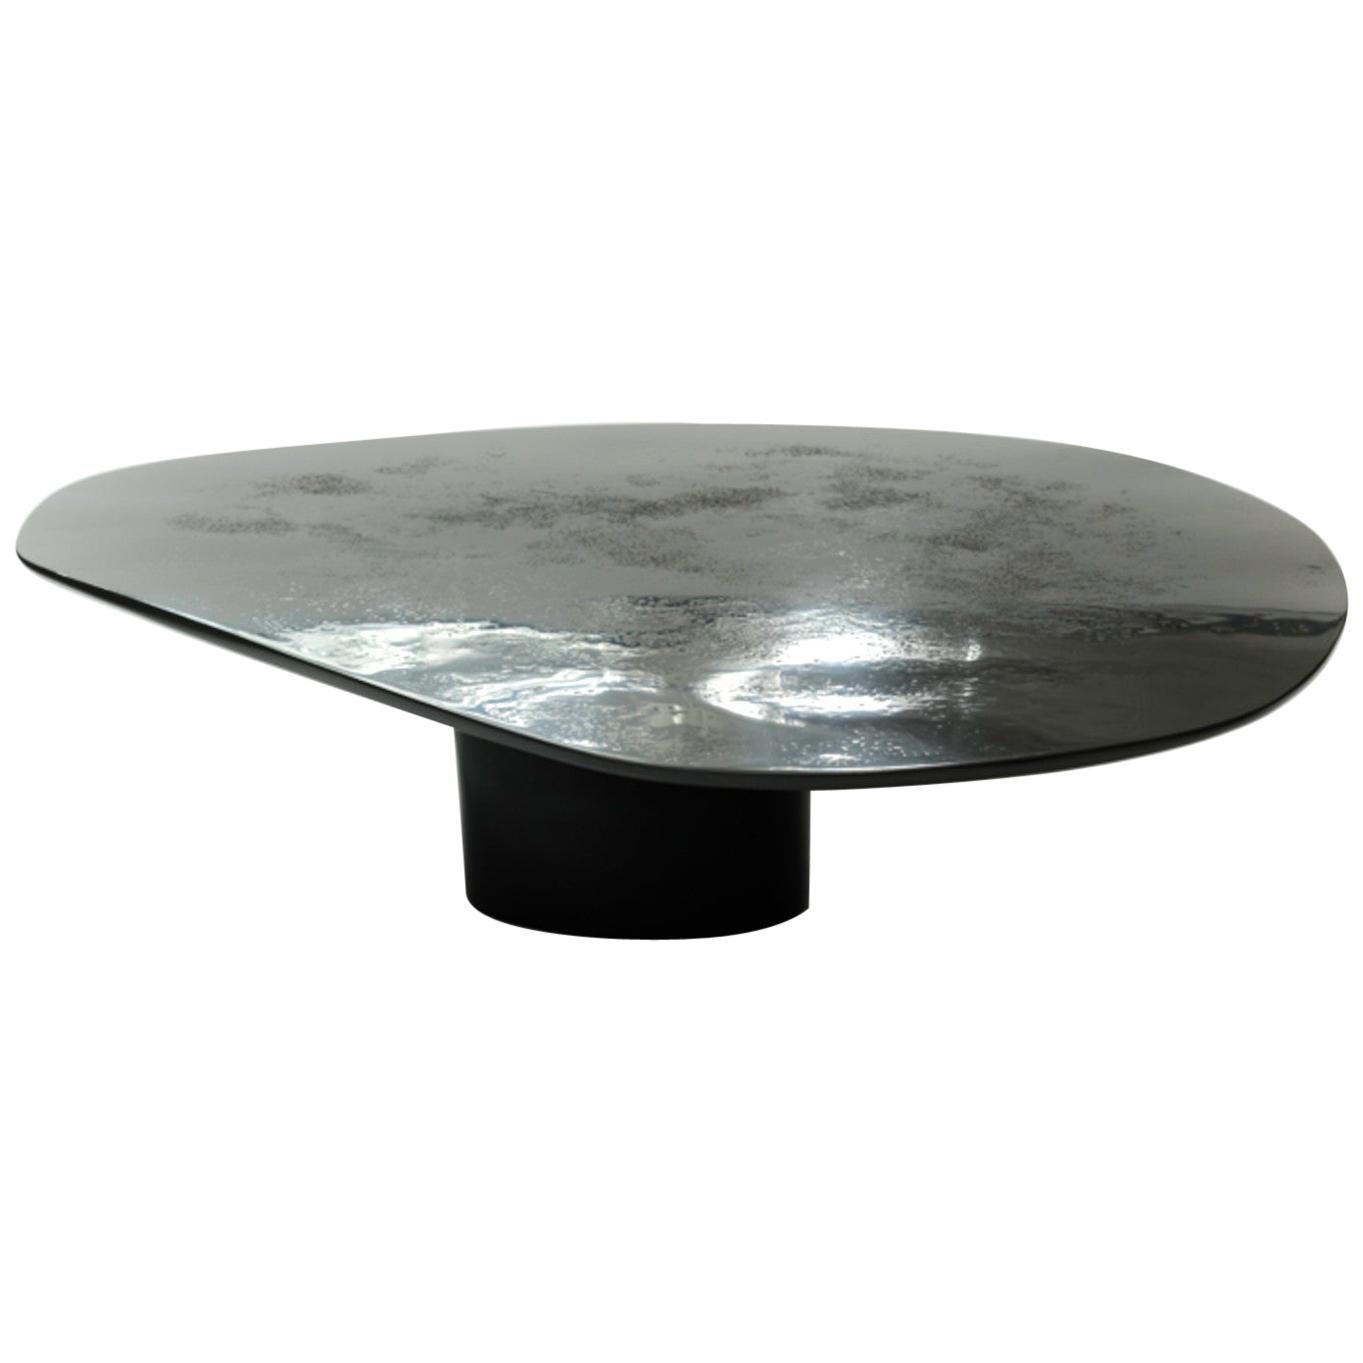 NR Smooth Black 21st Century Hand Sculpted Liquid Metal Low Cocktail Table